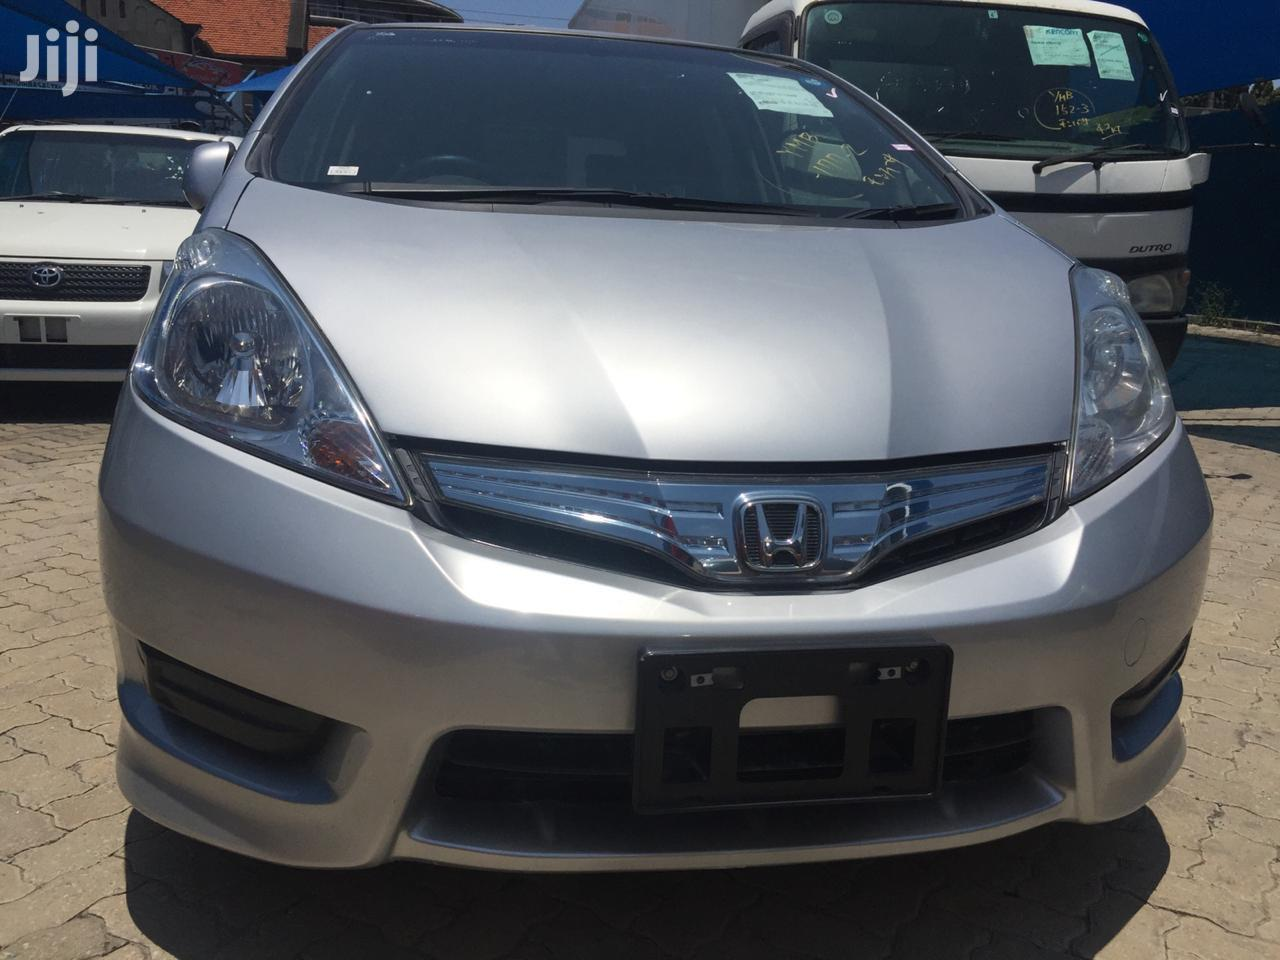 Honda Fit 2012 Silver | Cars for sale in Tudor, Mombasa, Kenya